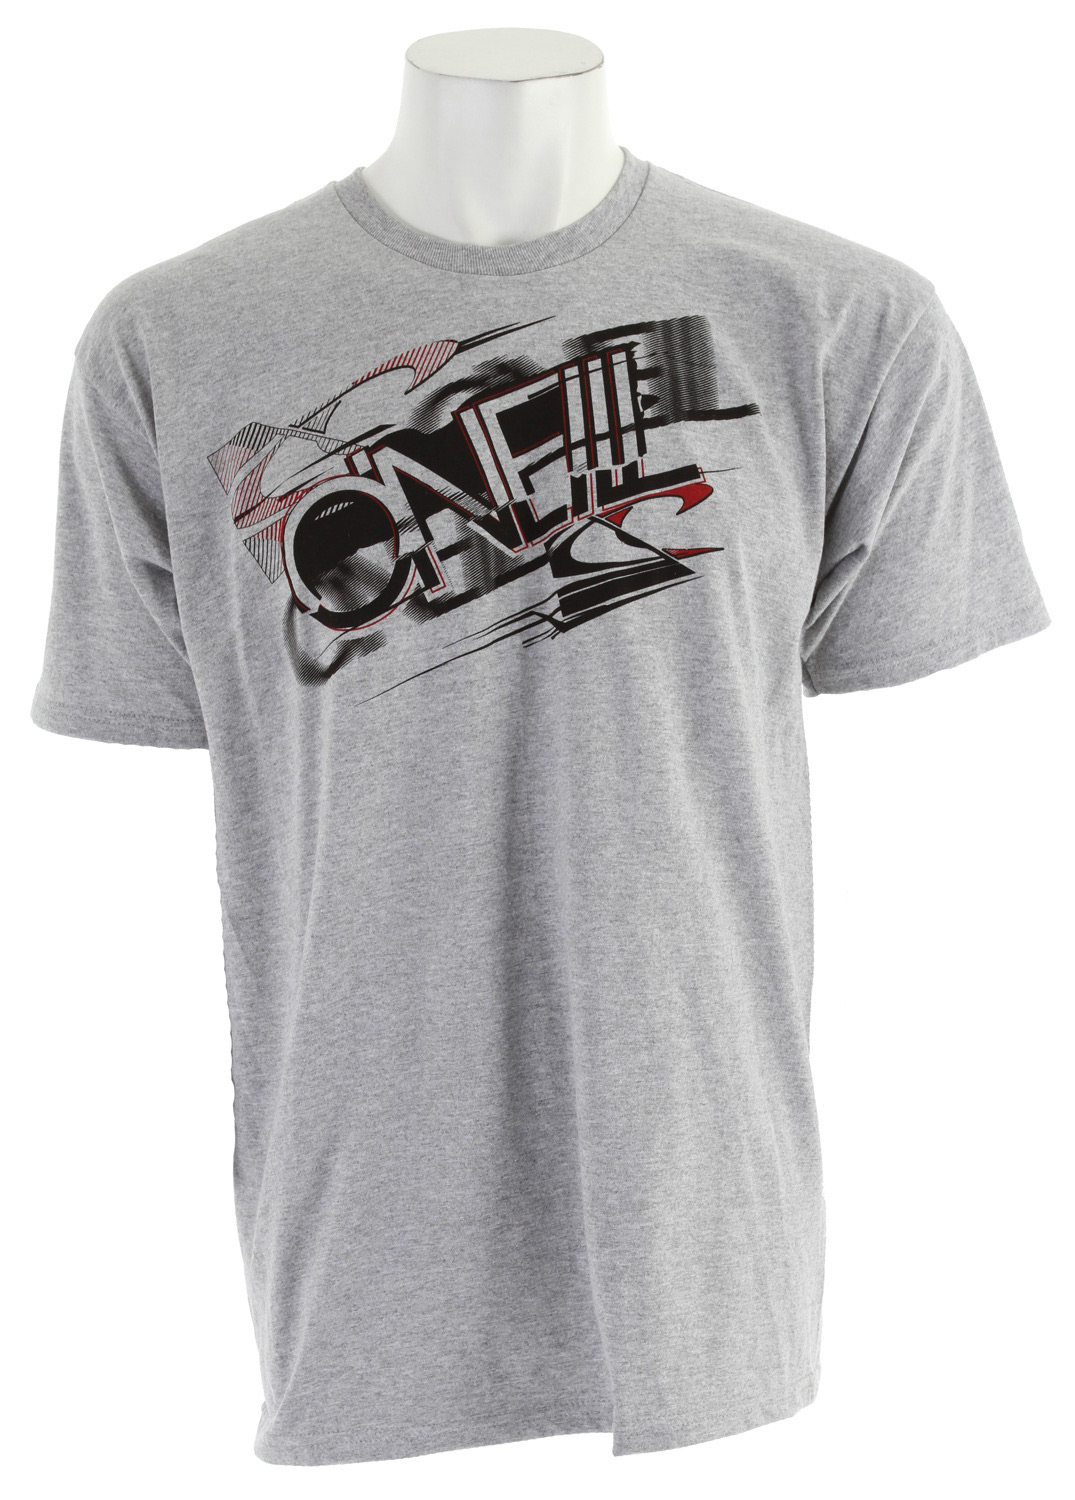 Surf Key Features of The O'Neill Smooth T-Shirt: Slim Fit Crew Neck Short Sleeve 100% ringspun cotton - $19.95